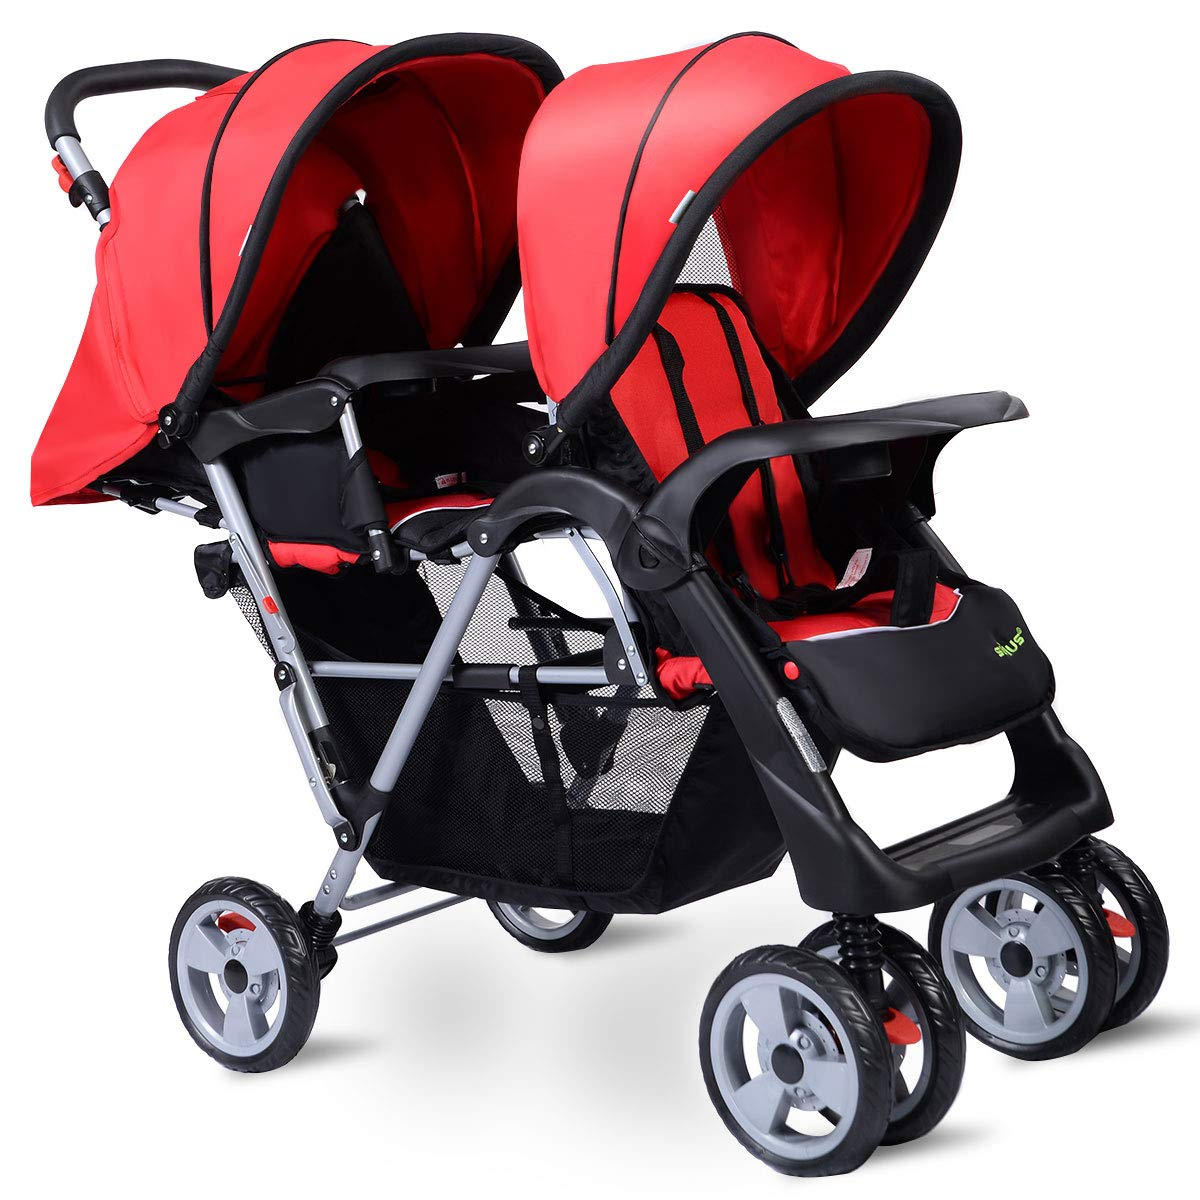 HOMGX Lightweight Large-scale sale Double Stroller with Fold Max 65% OFF Seating Tandem Easy